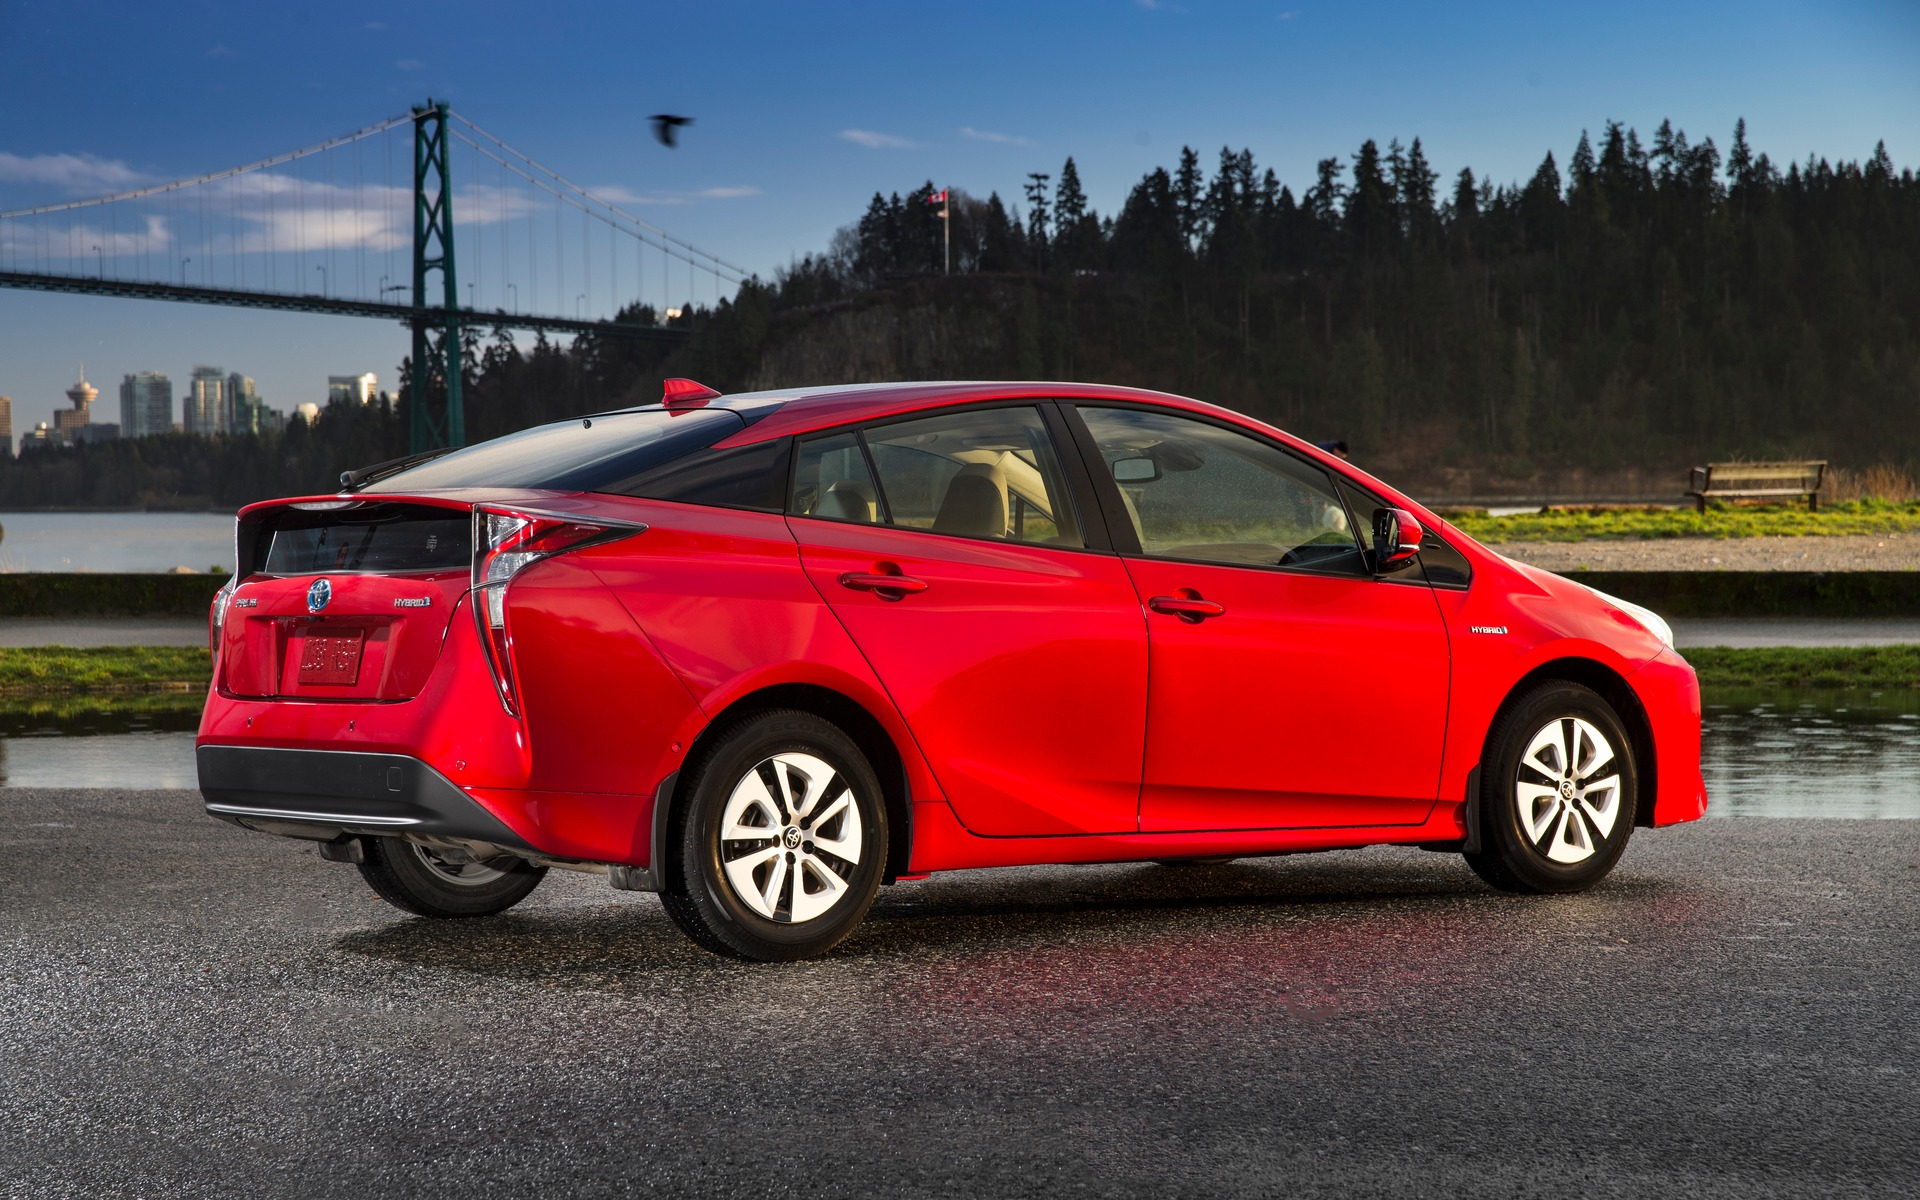 release cars information review date toyota united prius